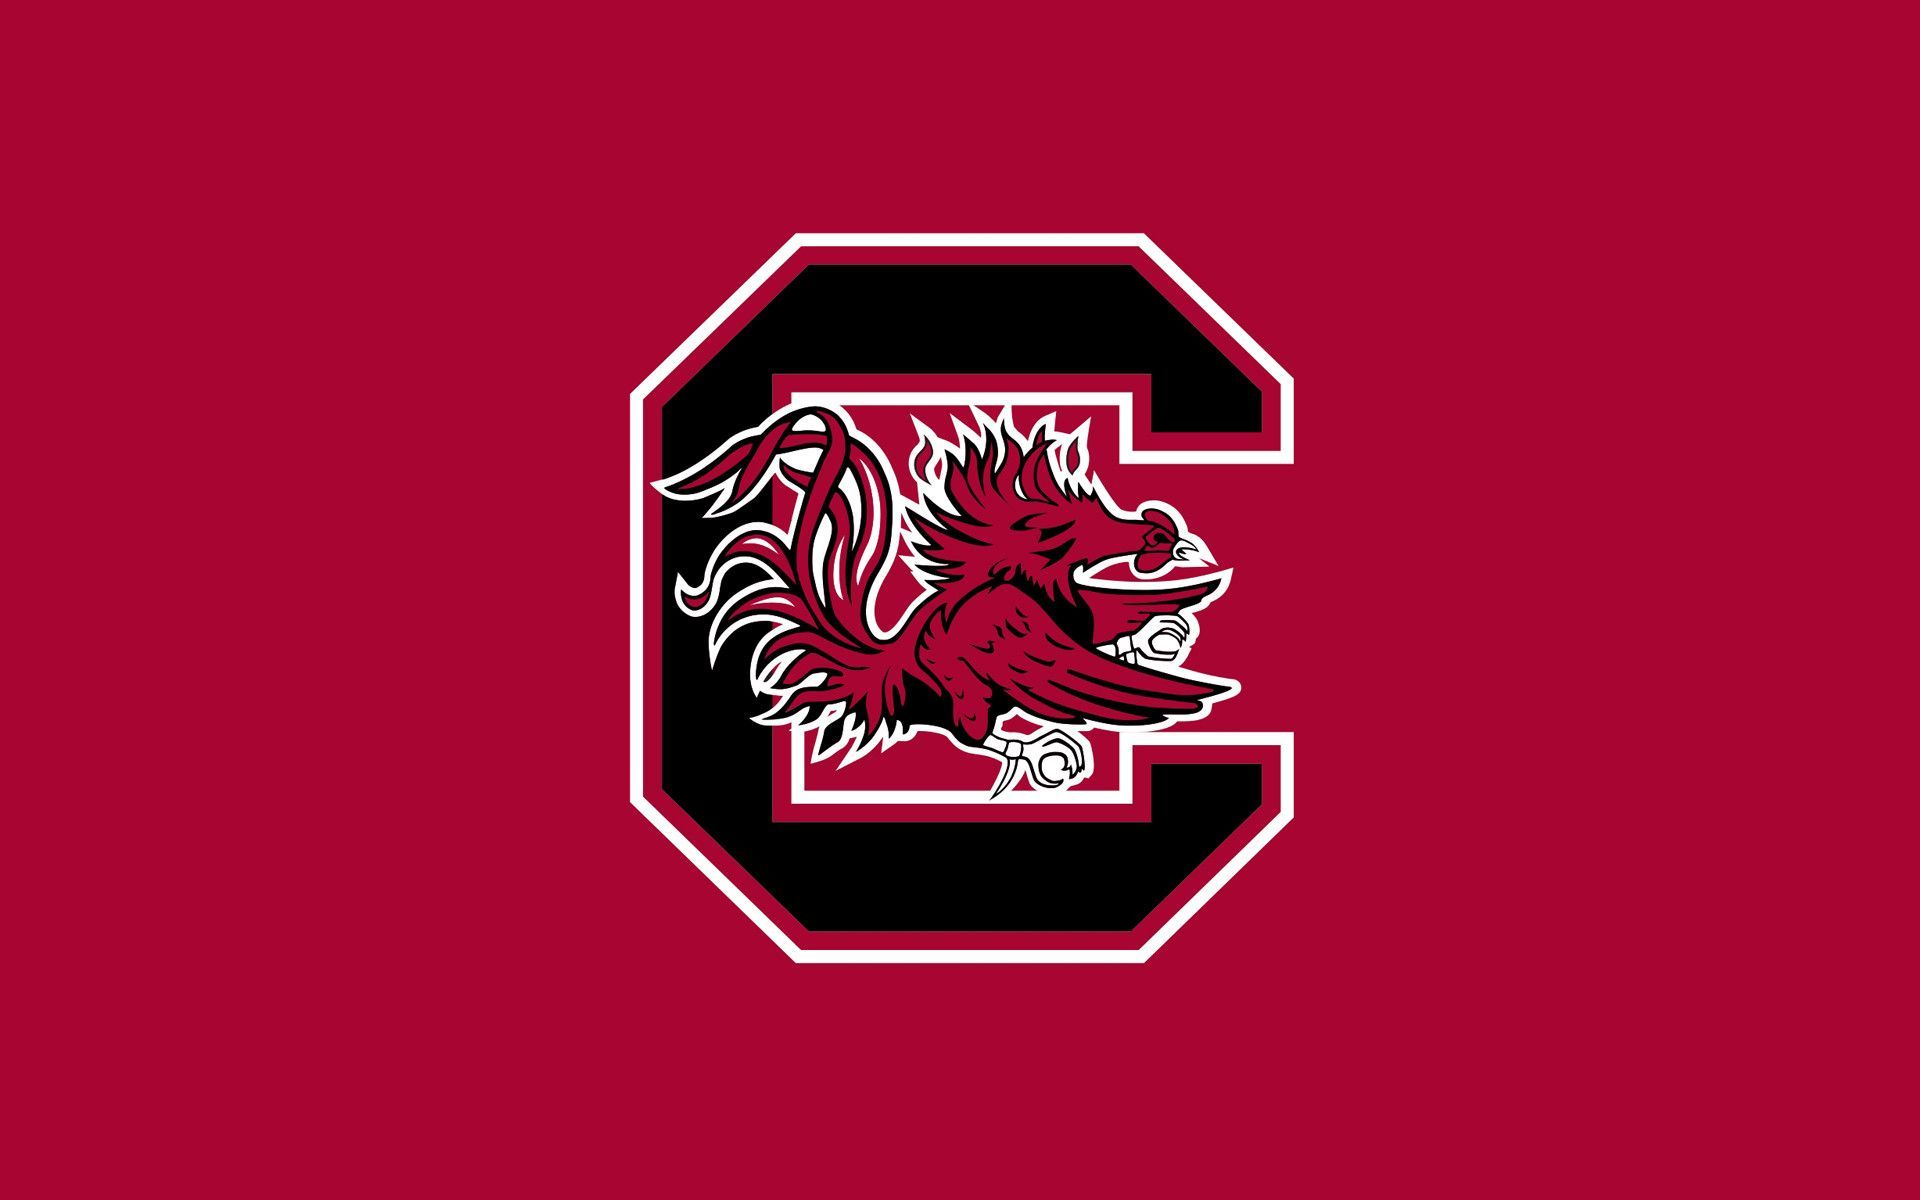 University Of South Carolina Wallpaper